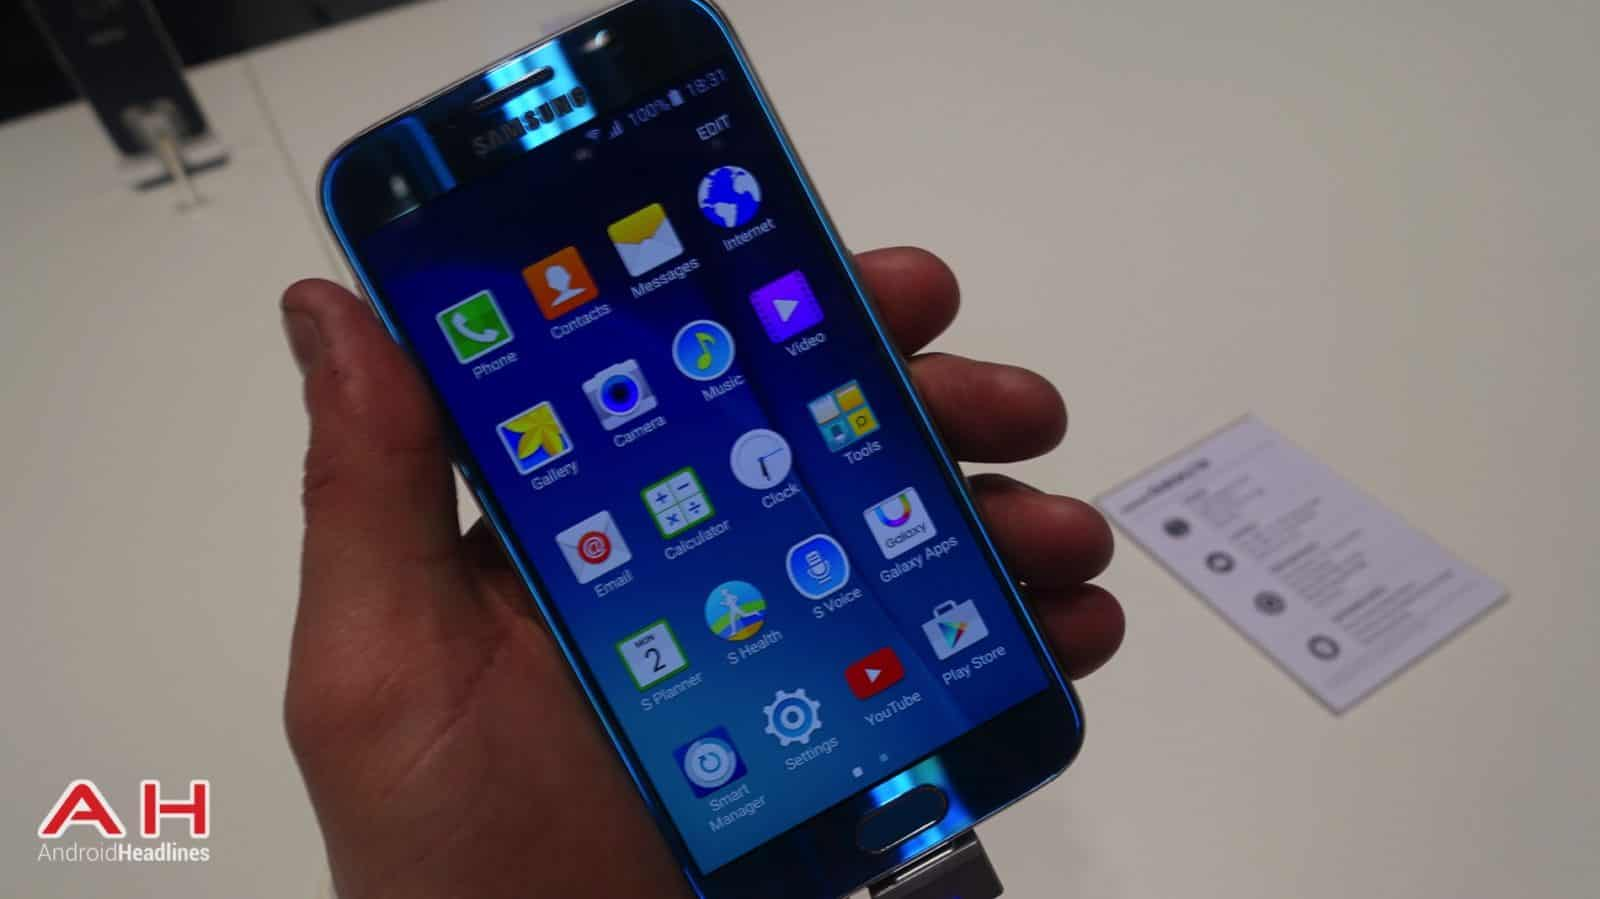 It Seems The Removal Of Apps On The Samsung Galaxy S6 And S6 Edge Is Not  Quite True